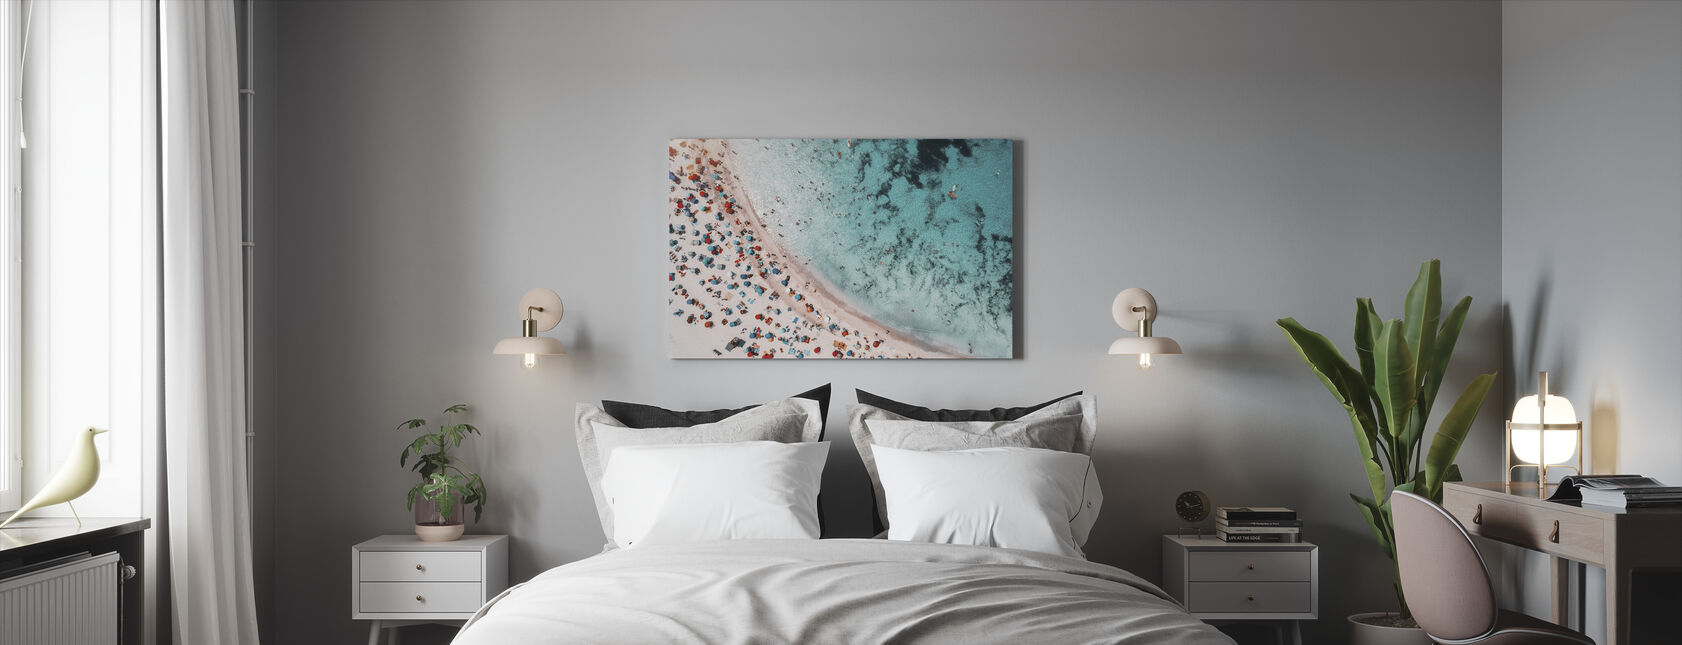 Coasting Along - Canvas print - Bedroom